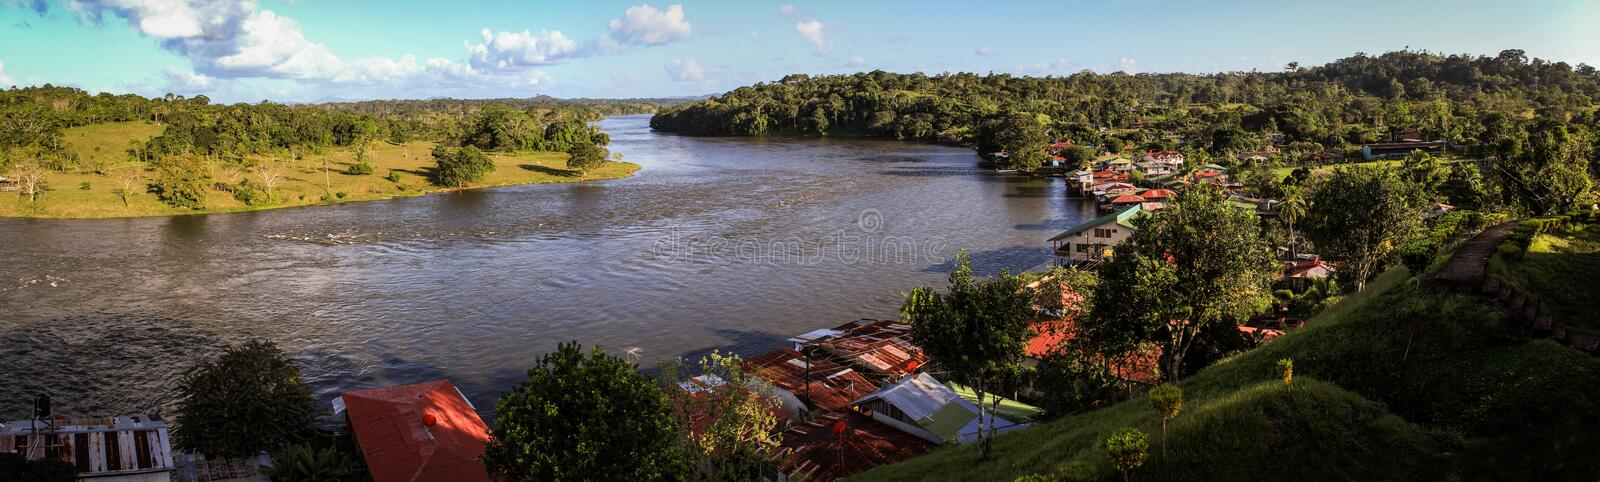 View of the Rio San Juan, from the old Spanish Fortress, Village of El Castillo, Rio San Juan, Nicaragua. El Castillo is a municipality located on the Río San stock photos